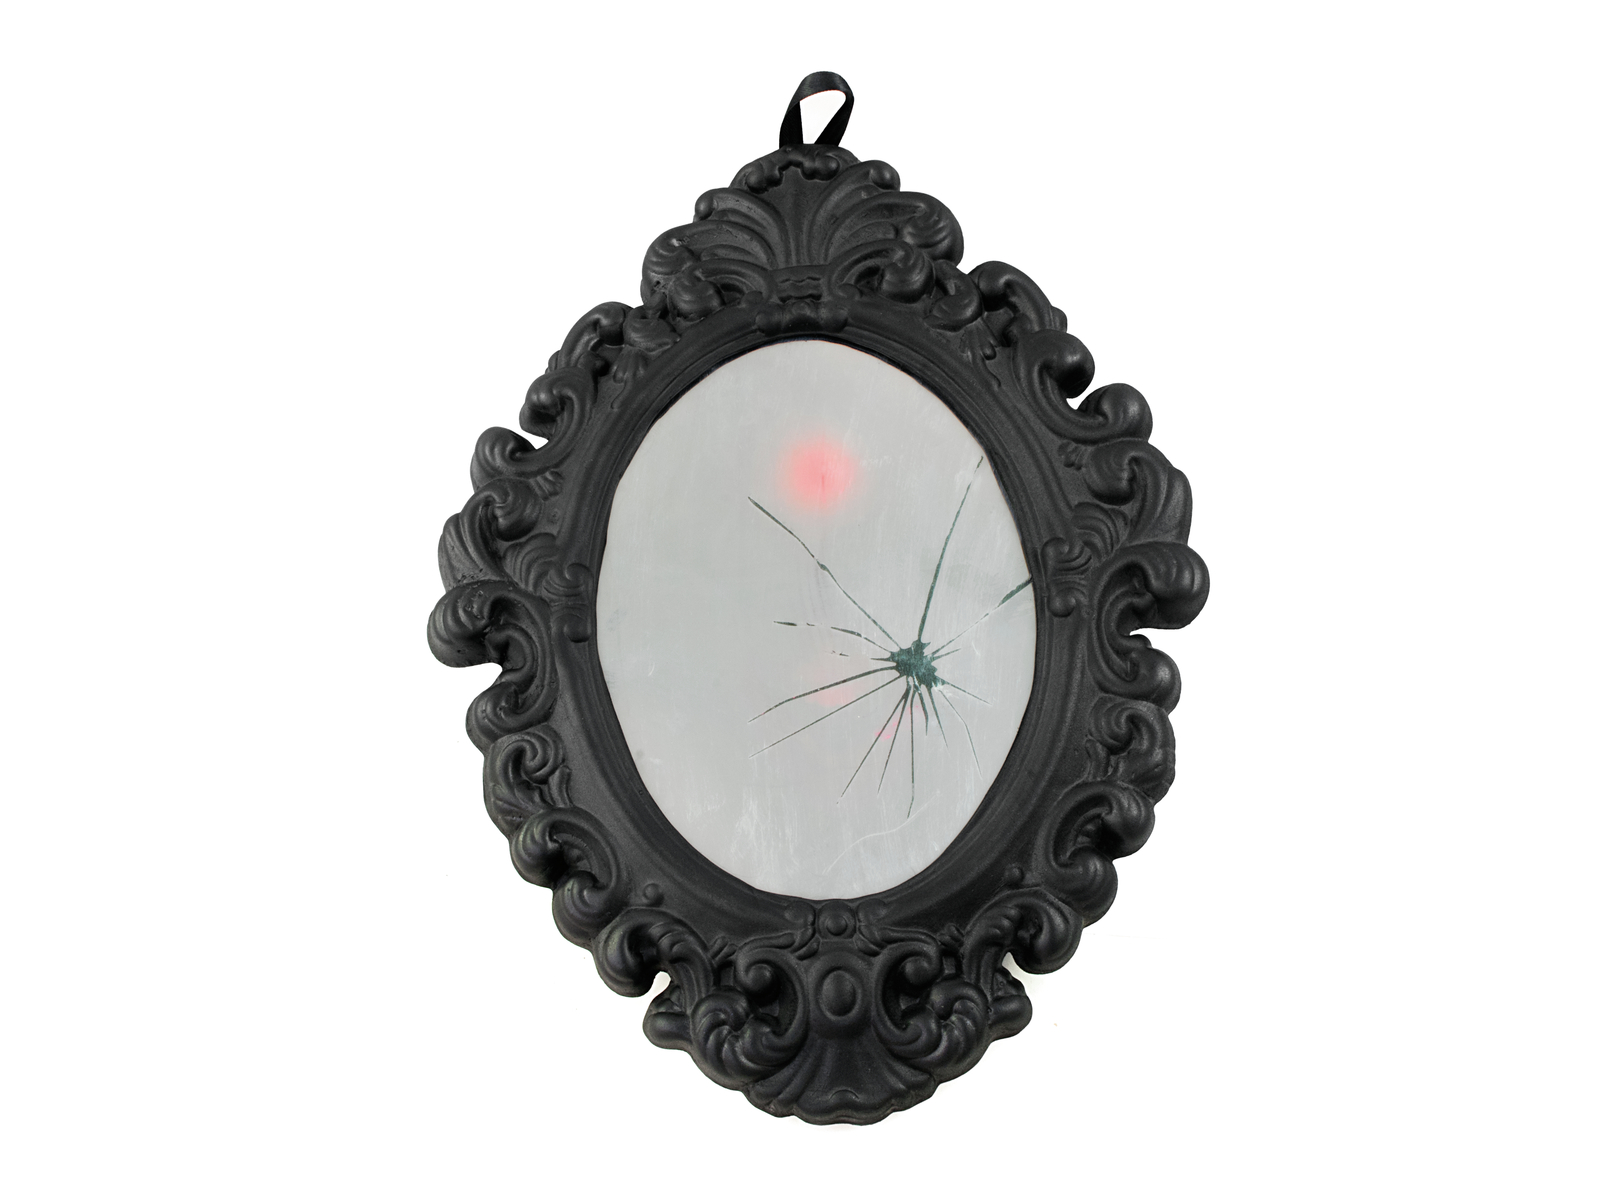 EUROPALMS Halloween Magic Mirror, 36cm